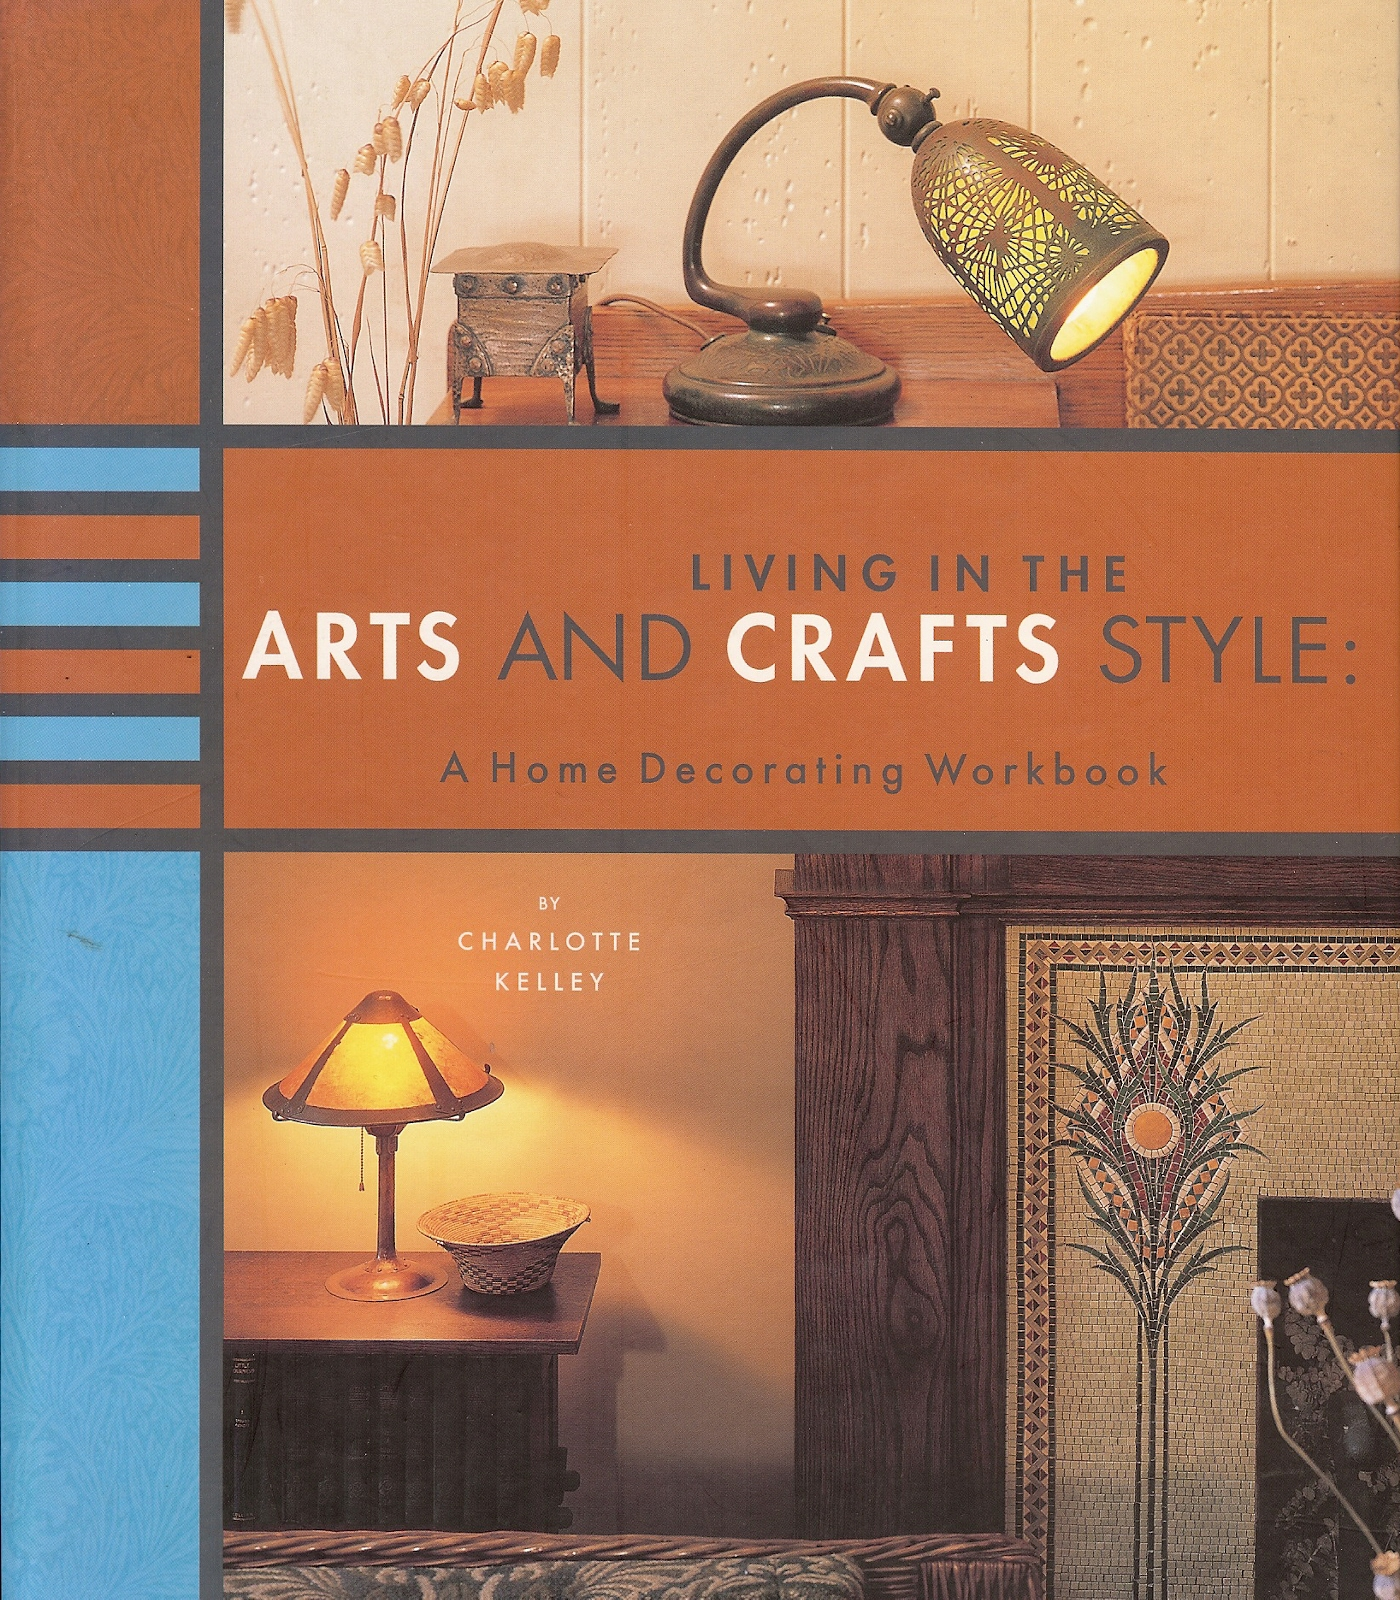 LIVING IN THE ARTS AND CRAFTS STYLE   A Home Decorating Workbook Image for LIVING IN THE ARTS AND CRAFTS STYLE   A Home Decorating Workbook